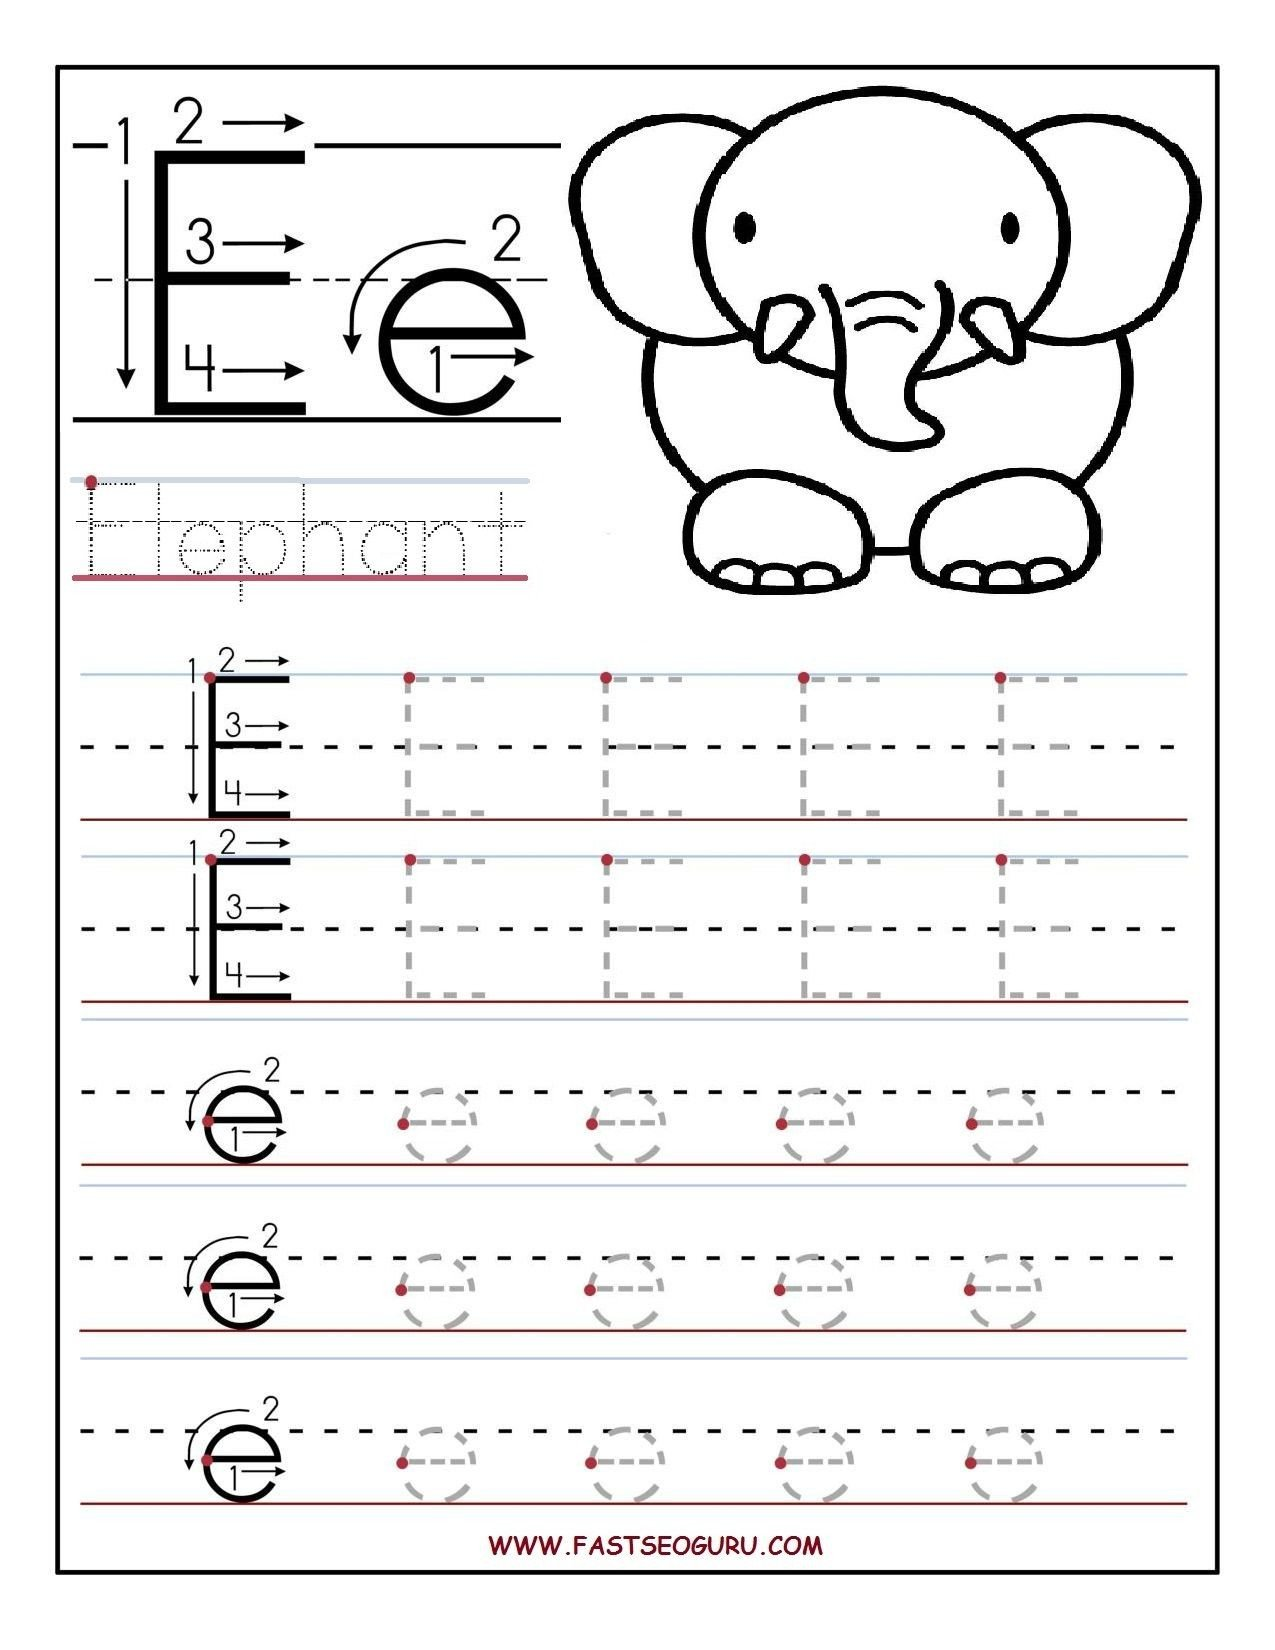 Letter K Tracing Worksheets Preschool Printable Letter E Tracing Worksheets for Preschool